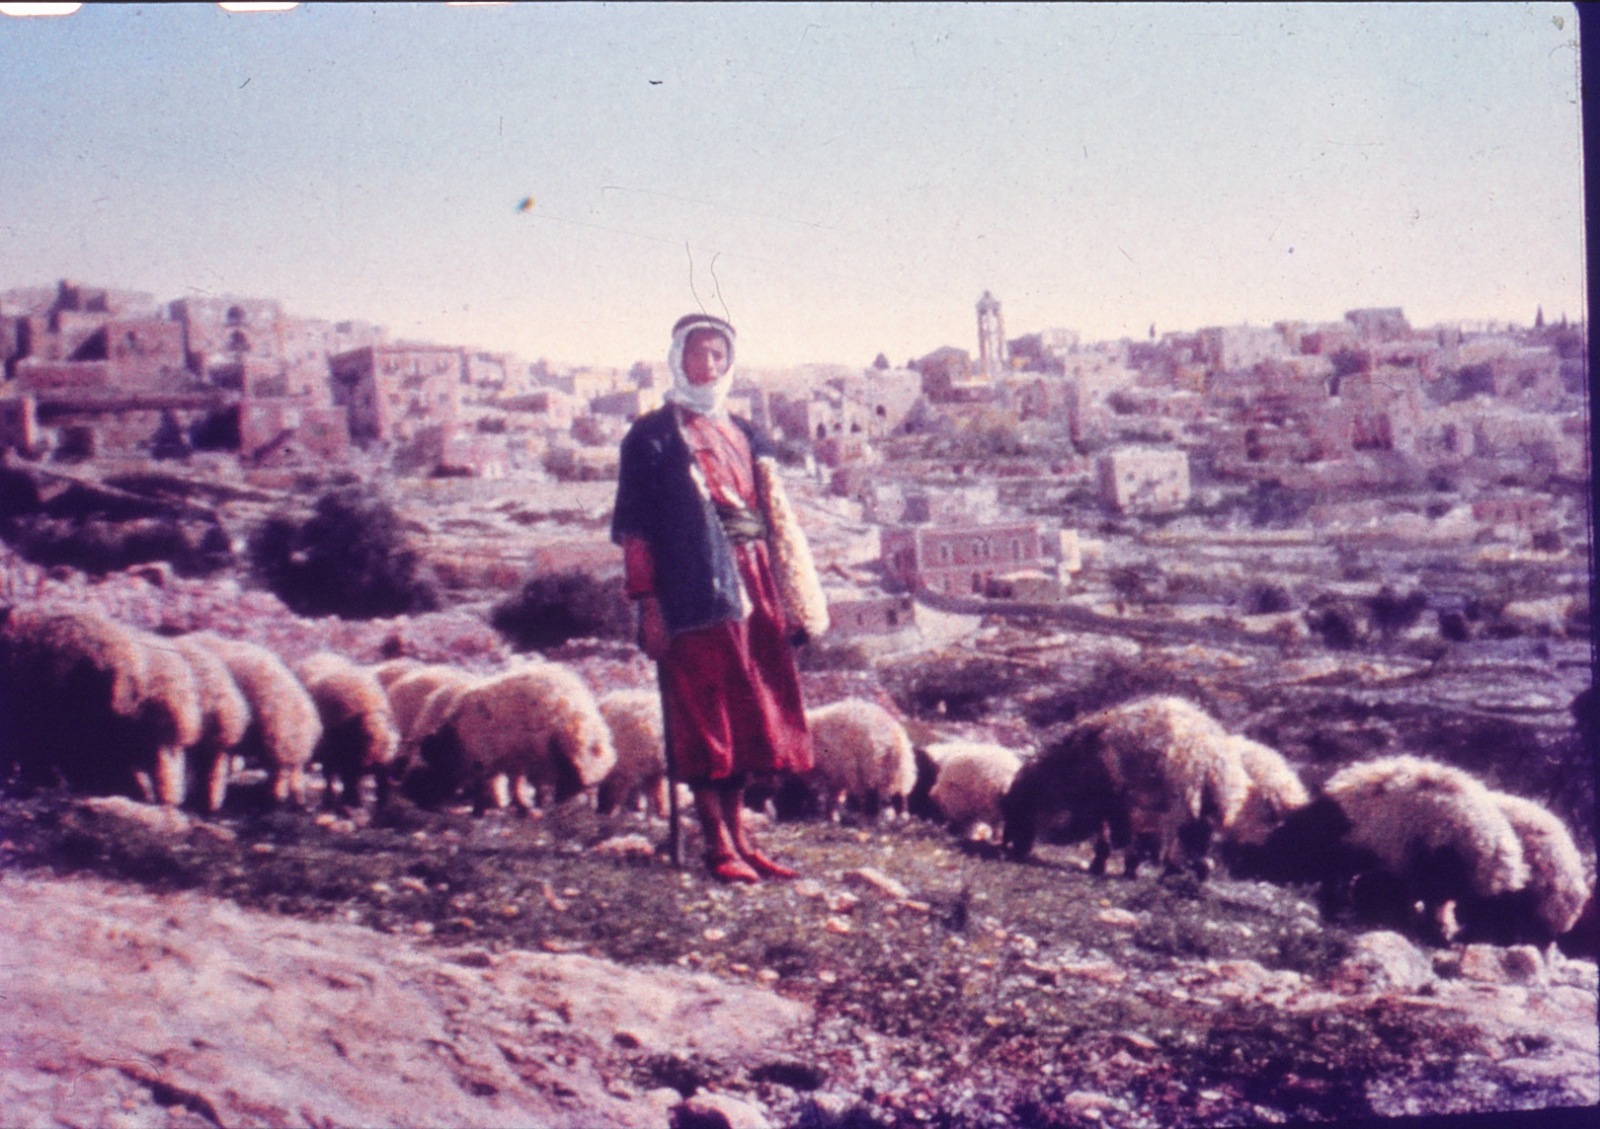 Shepherd's Field in Bethlehem